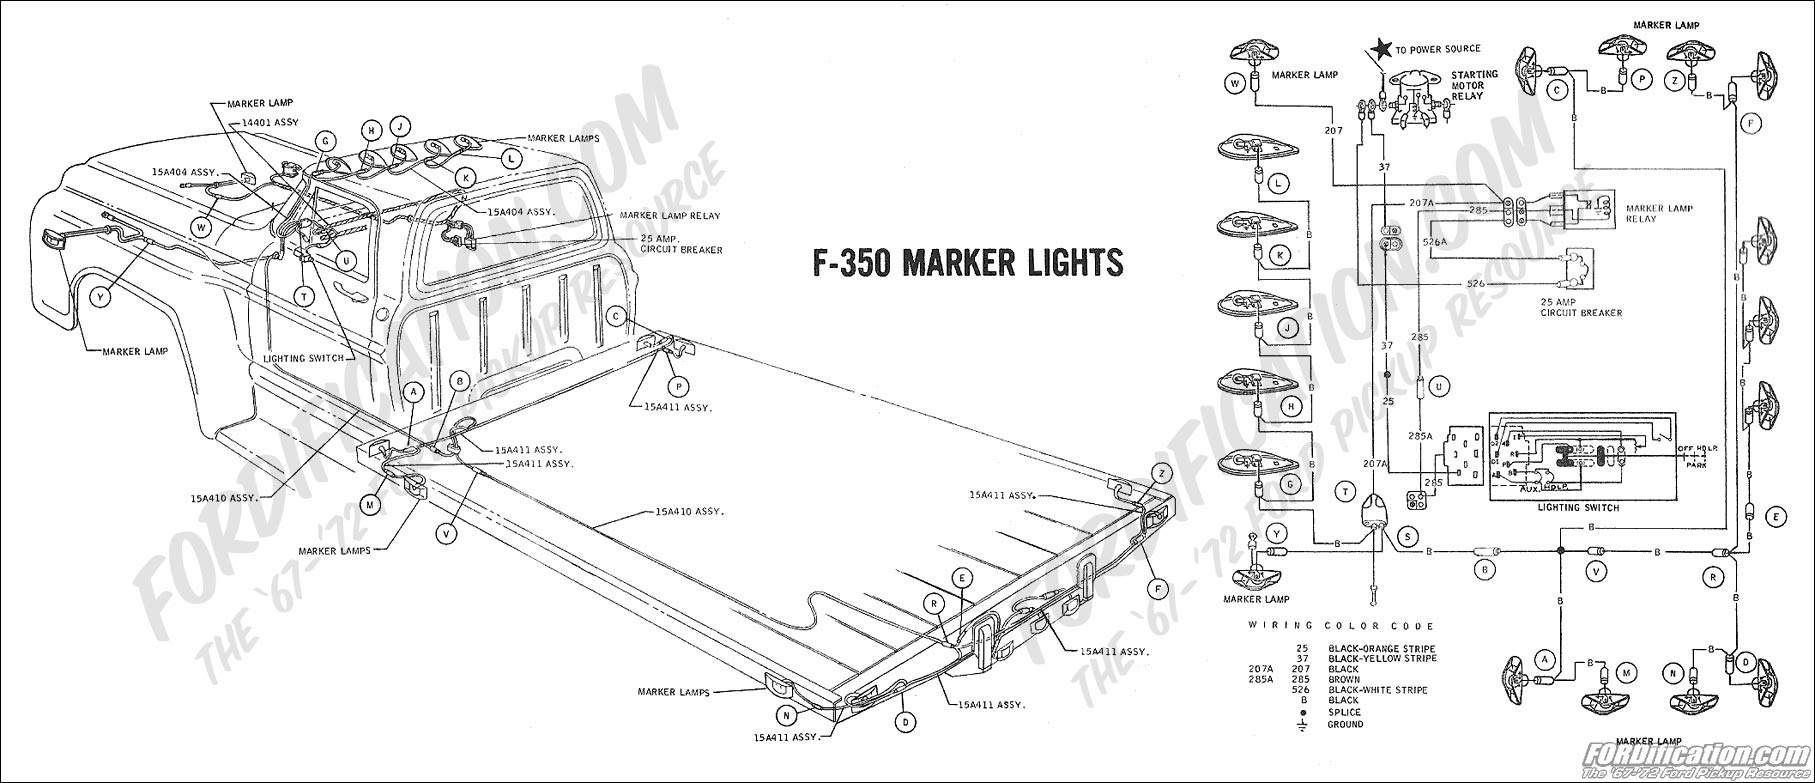 hight resolution of 1969 f 350 marker lights